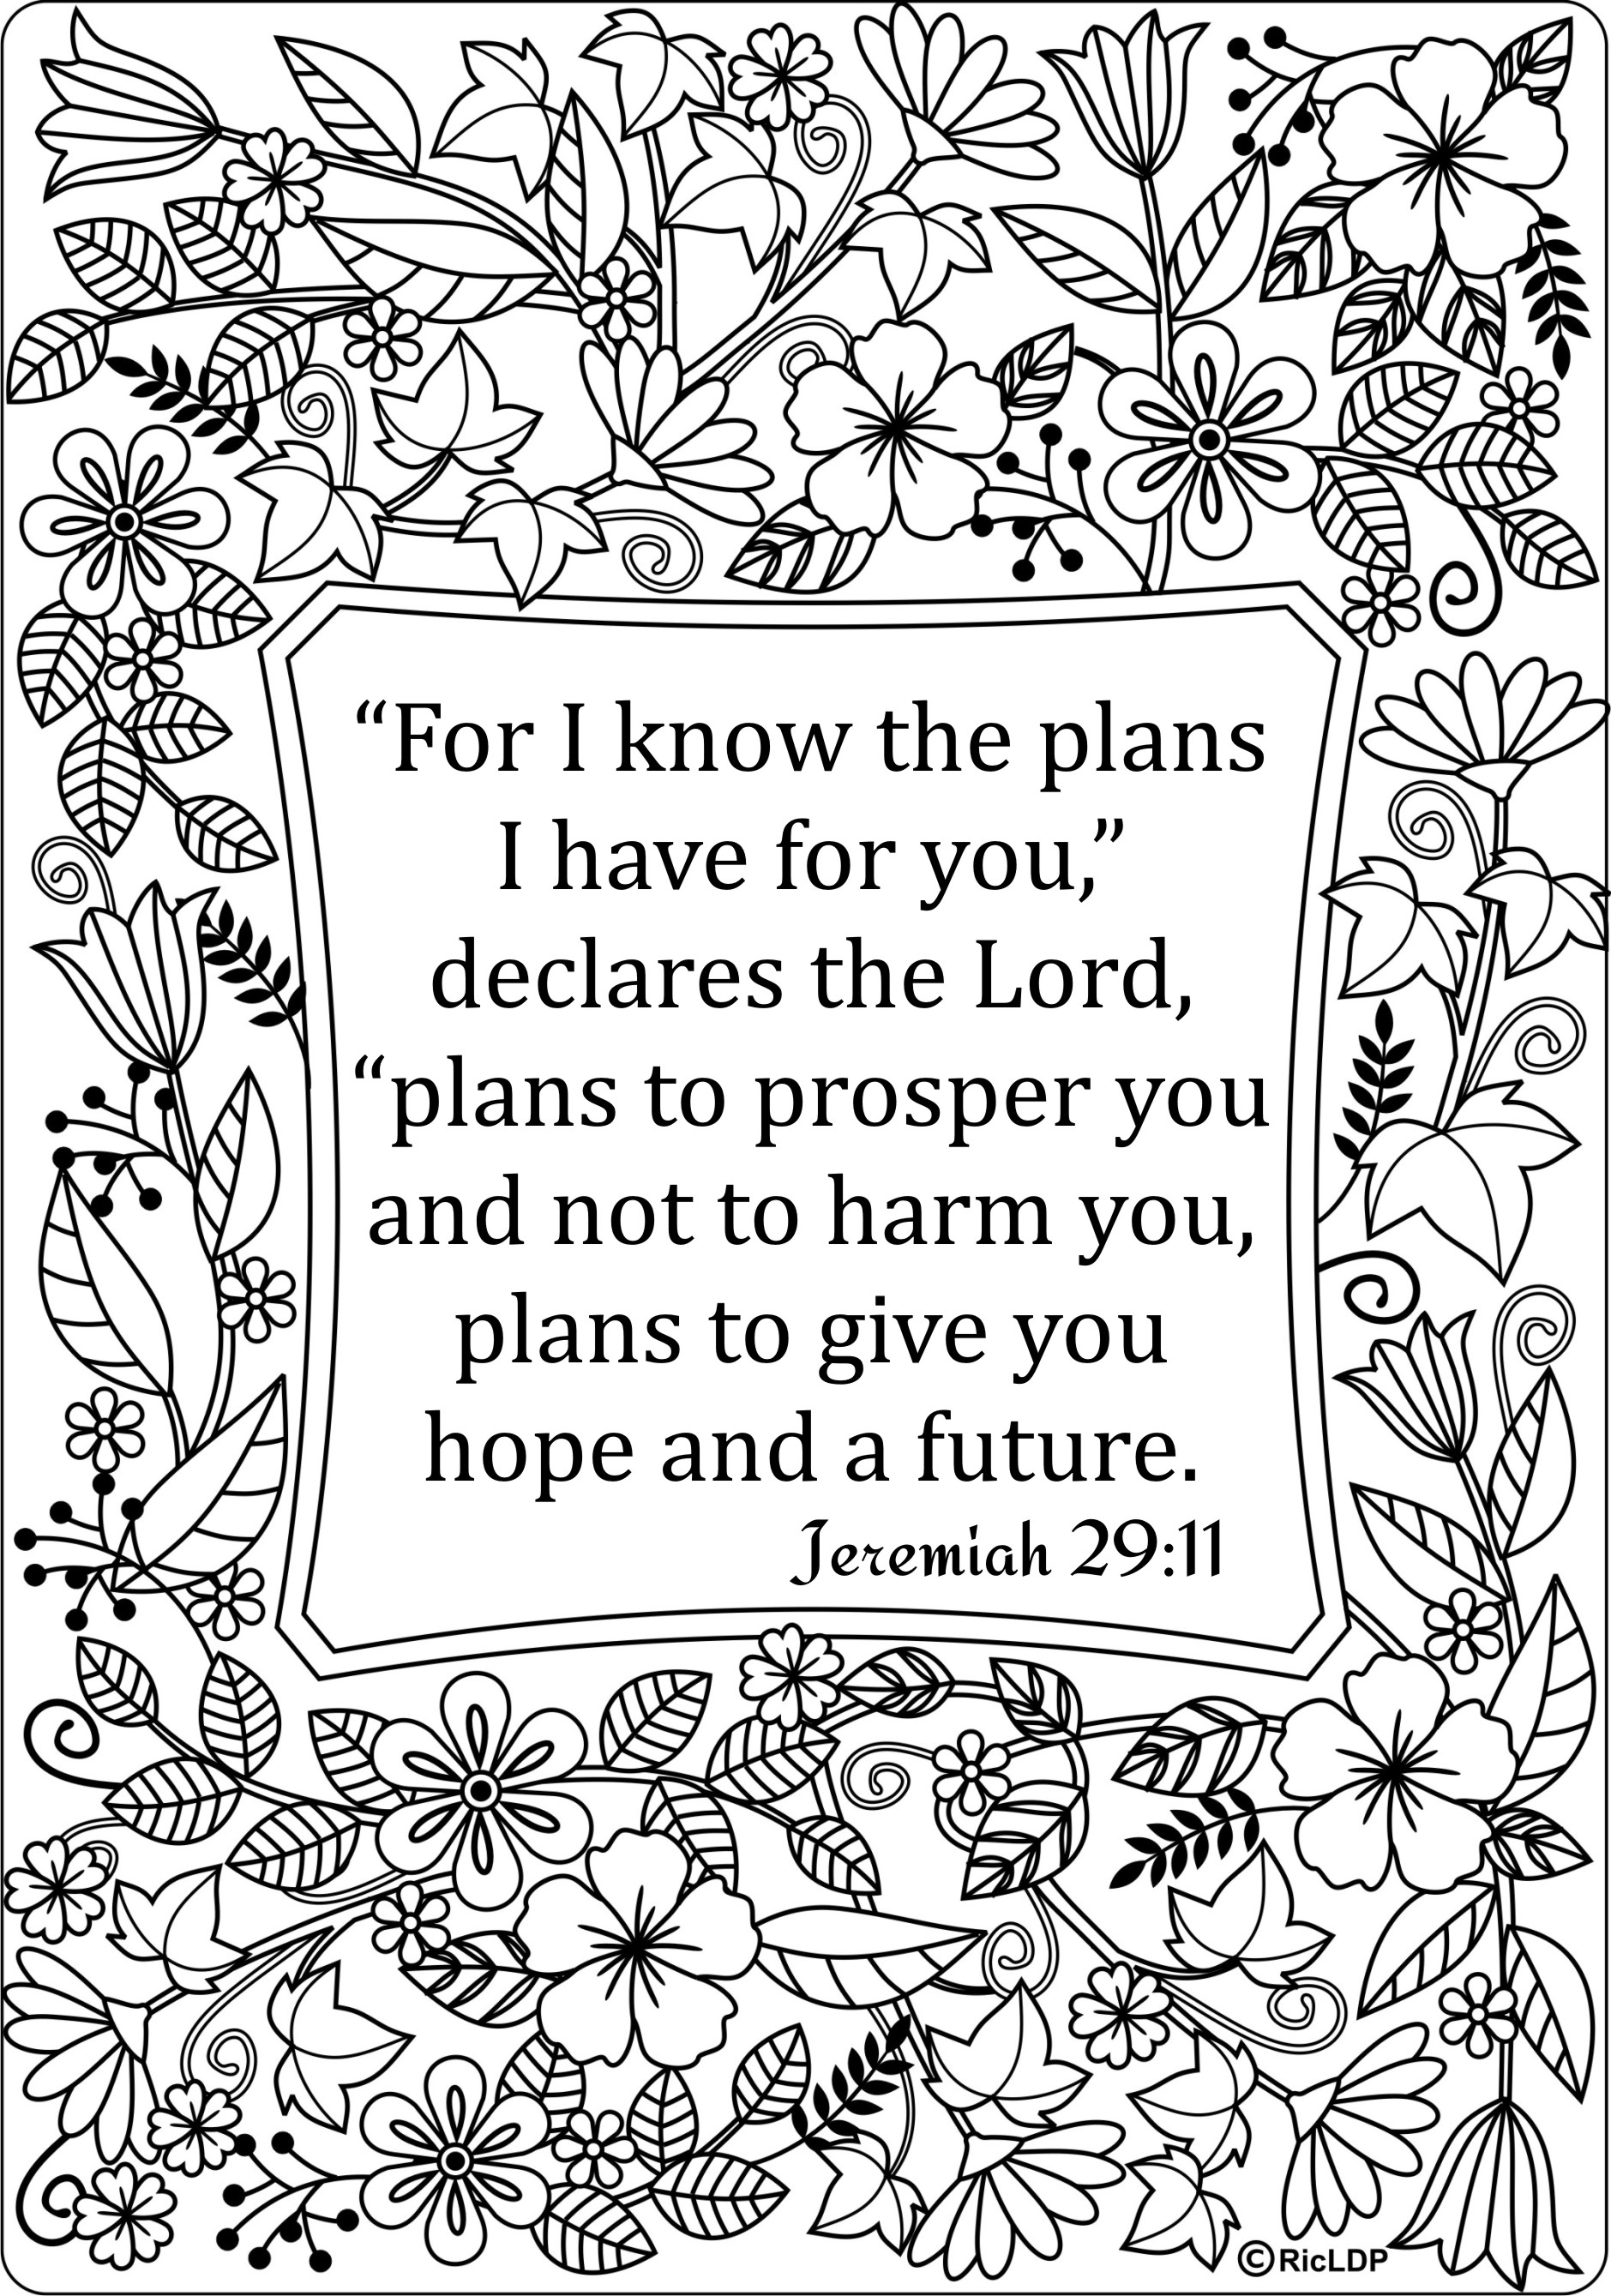 Awesome Adult Coloring Pages Scripture Verses Gallery to Print Of Free Printable Adult Coloring Pages Hymns & Scripture Our Printable